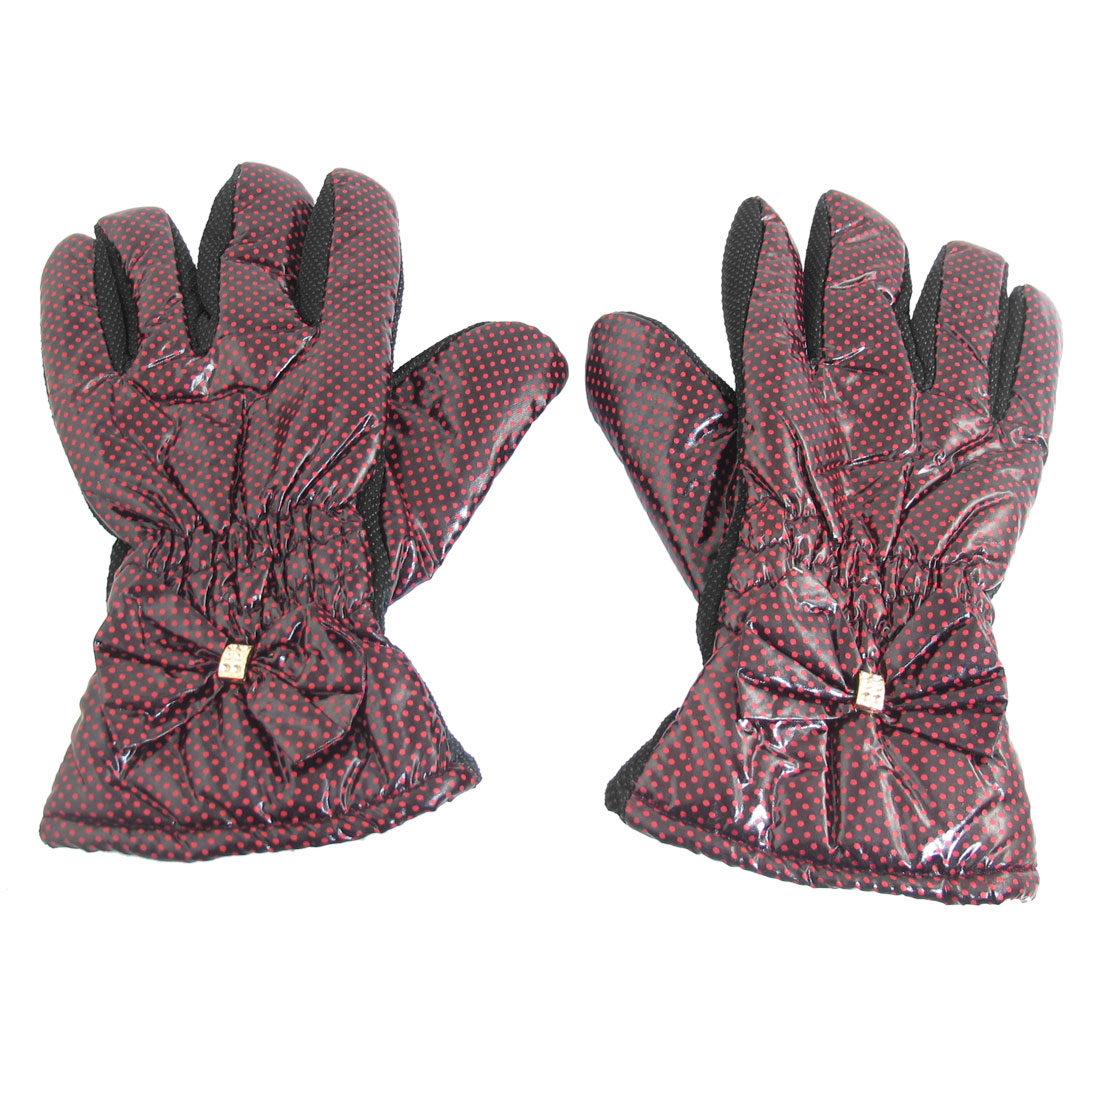 Nonslip Palm Design Bowknot Decor Full Finger Winter Gloves for Women